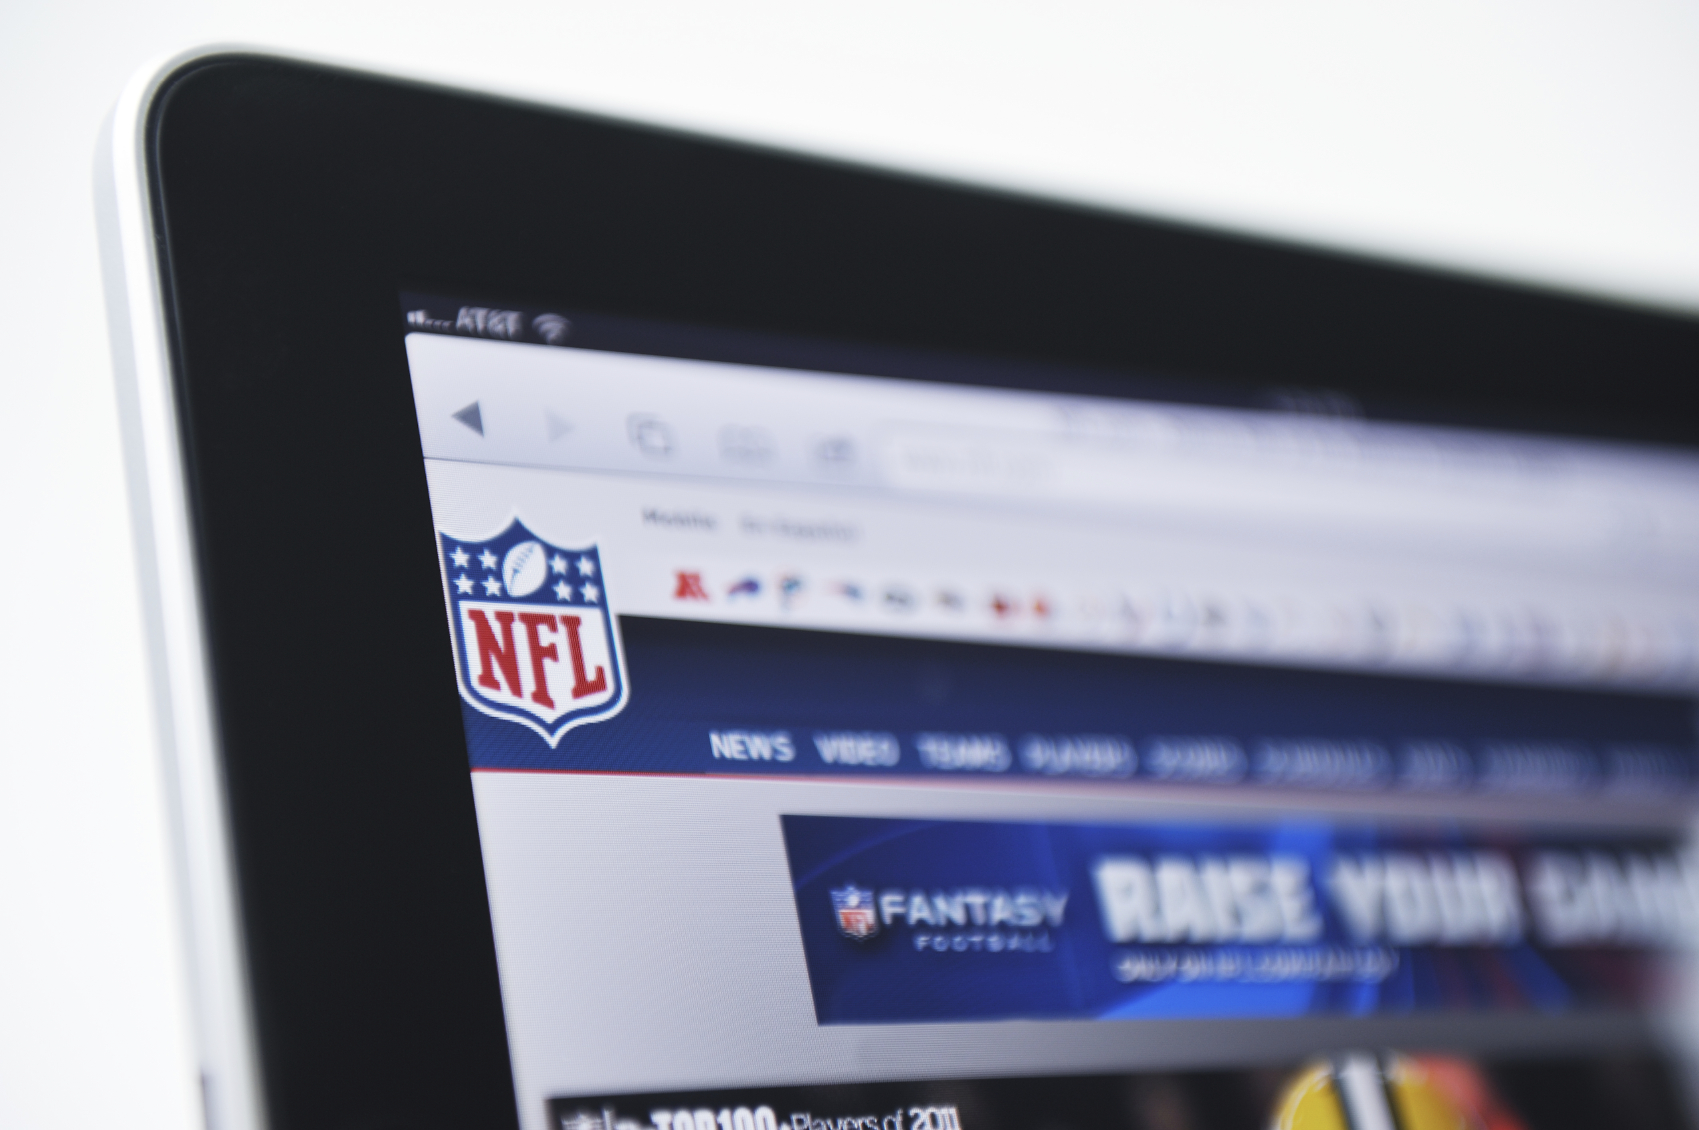 Holding an iPad Displaying the NFL Logo and Fantasy Football website. (stock image)